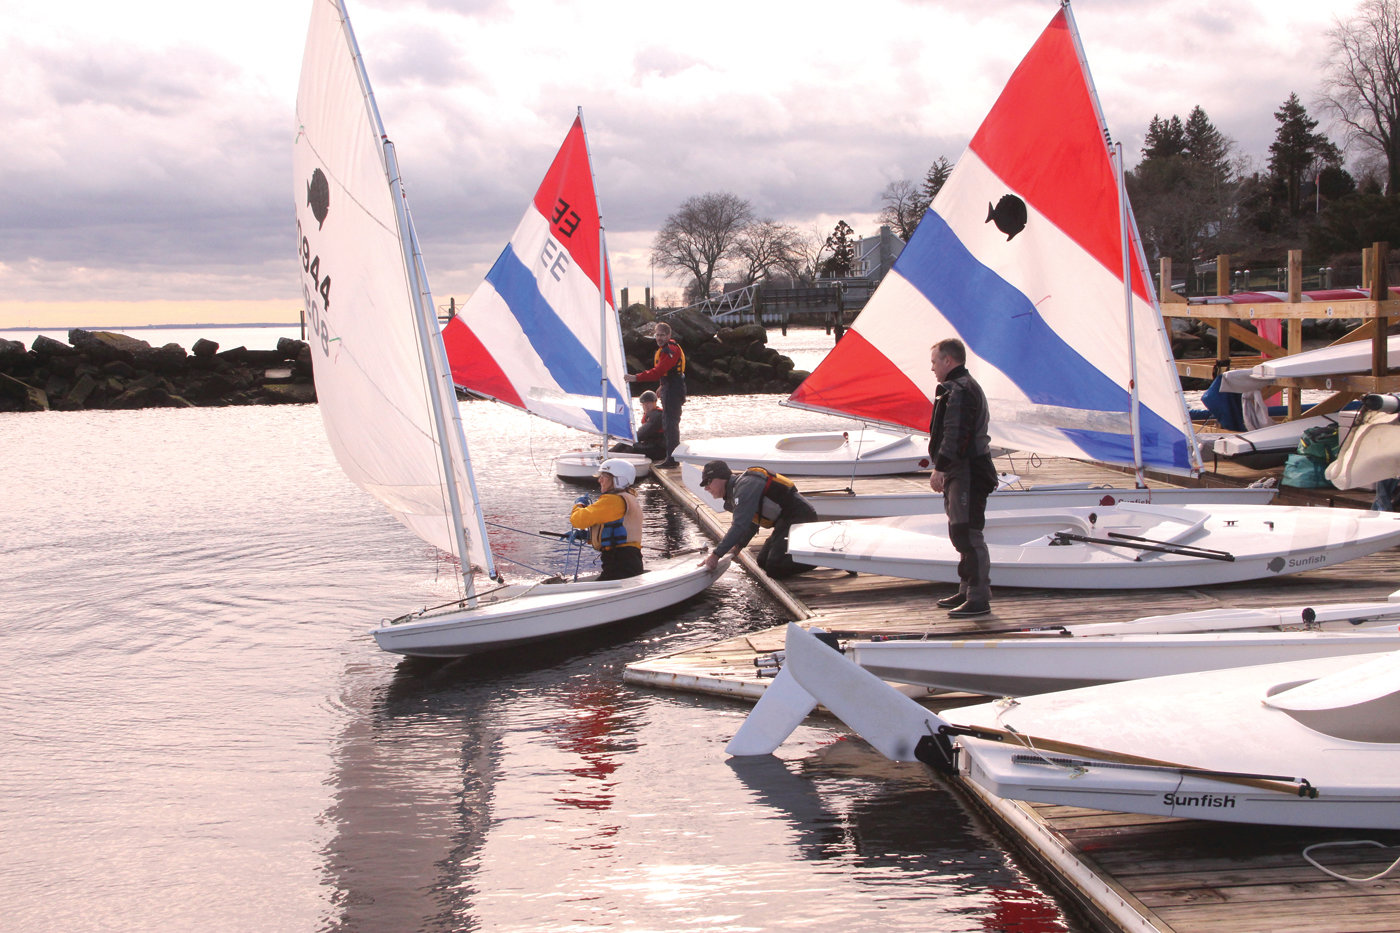 OFF TO THE RACES:  With assistance from fellow sailors, the fleet leaves the tranquility of the docks for open water.